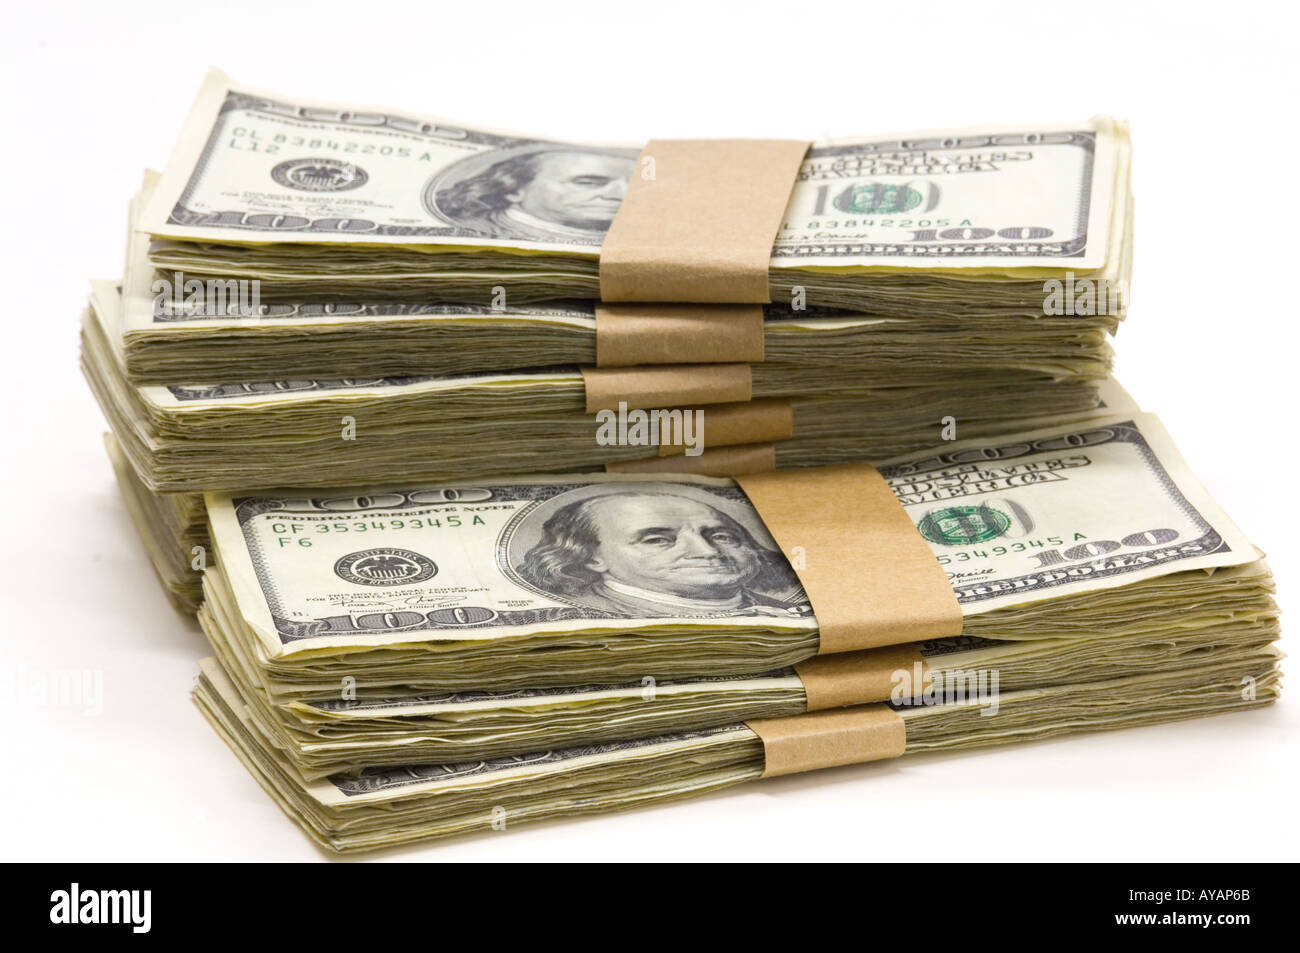 Packs 100 billets d'un dollar US Photo Stock